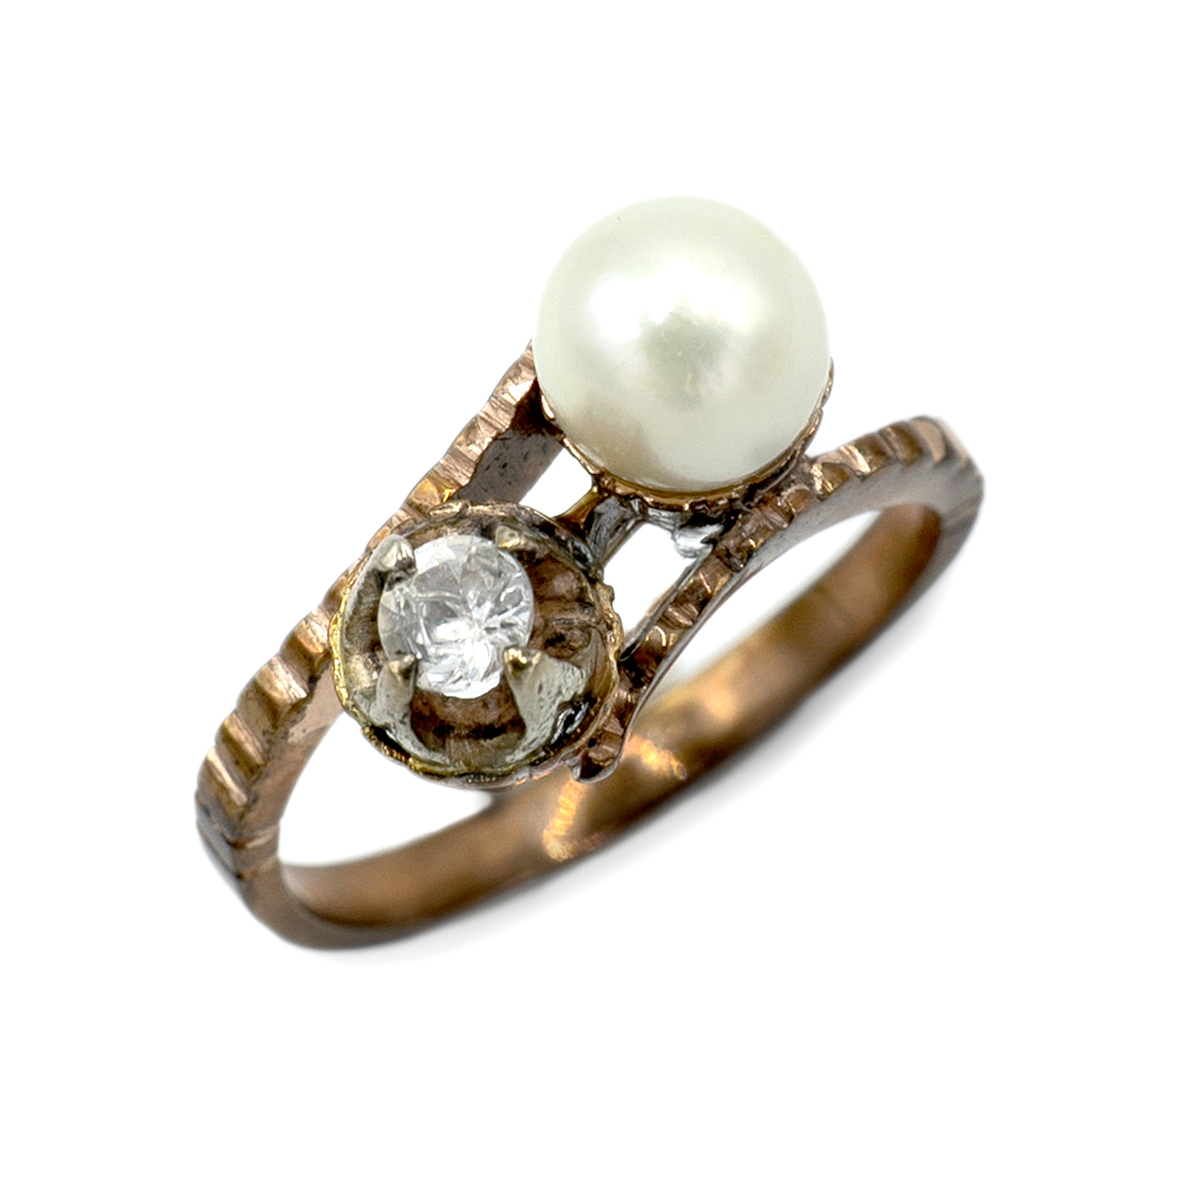 You And Me Ring With Pearl And Shiny.